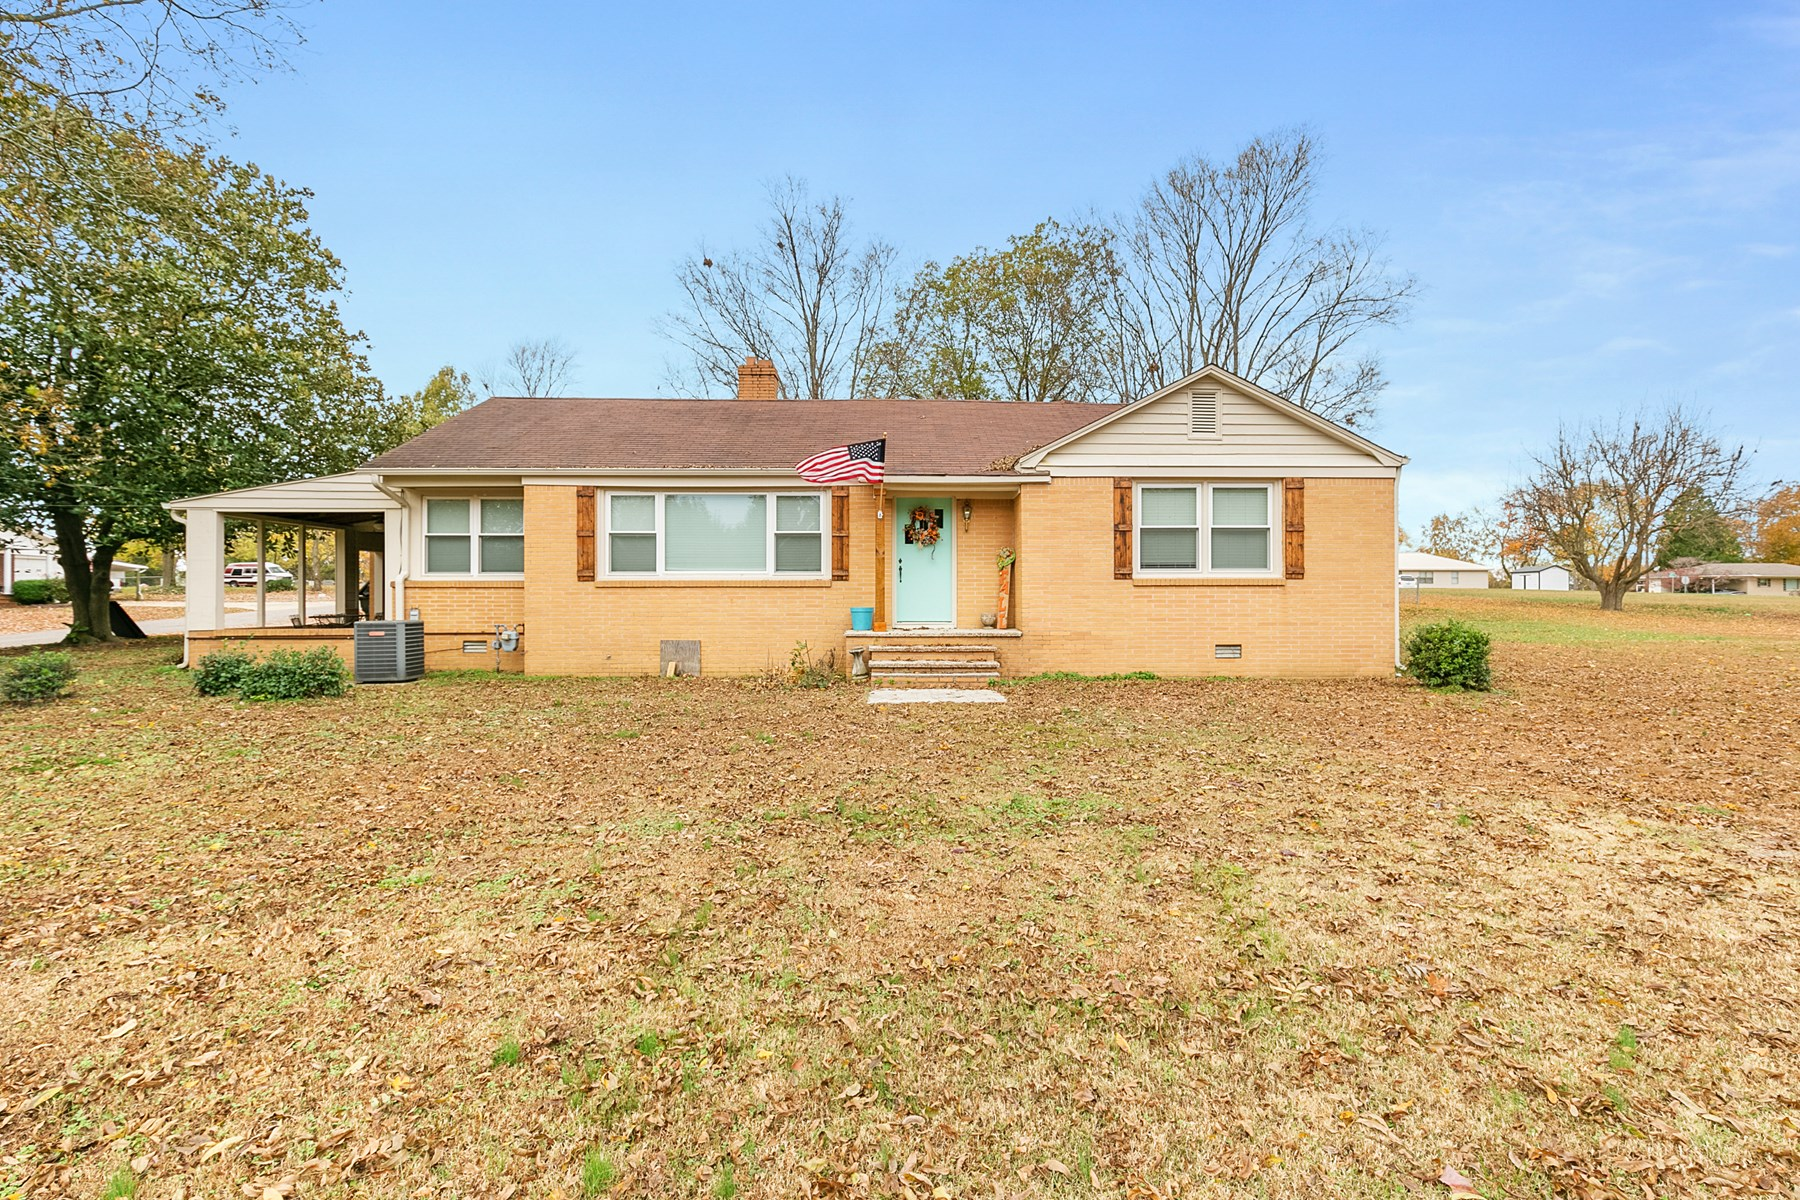 Updated Brick Home for Sale on 1+ Acre Lot in Rutherford, TN